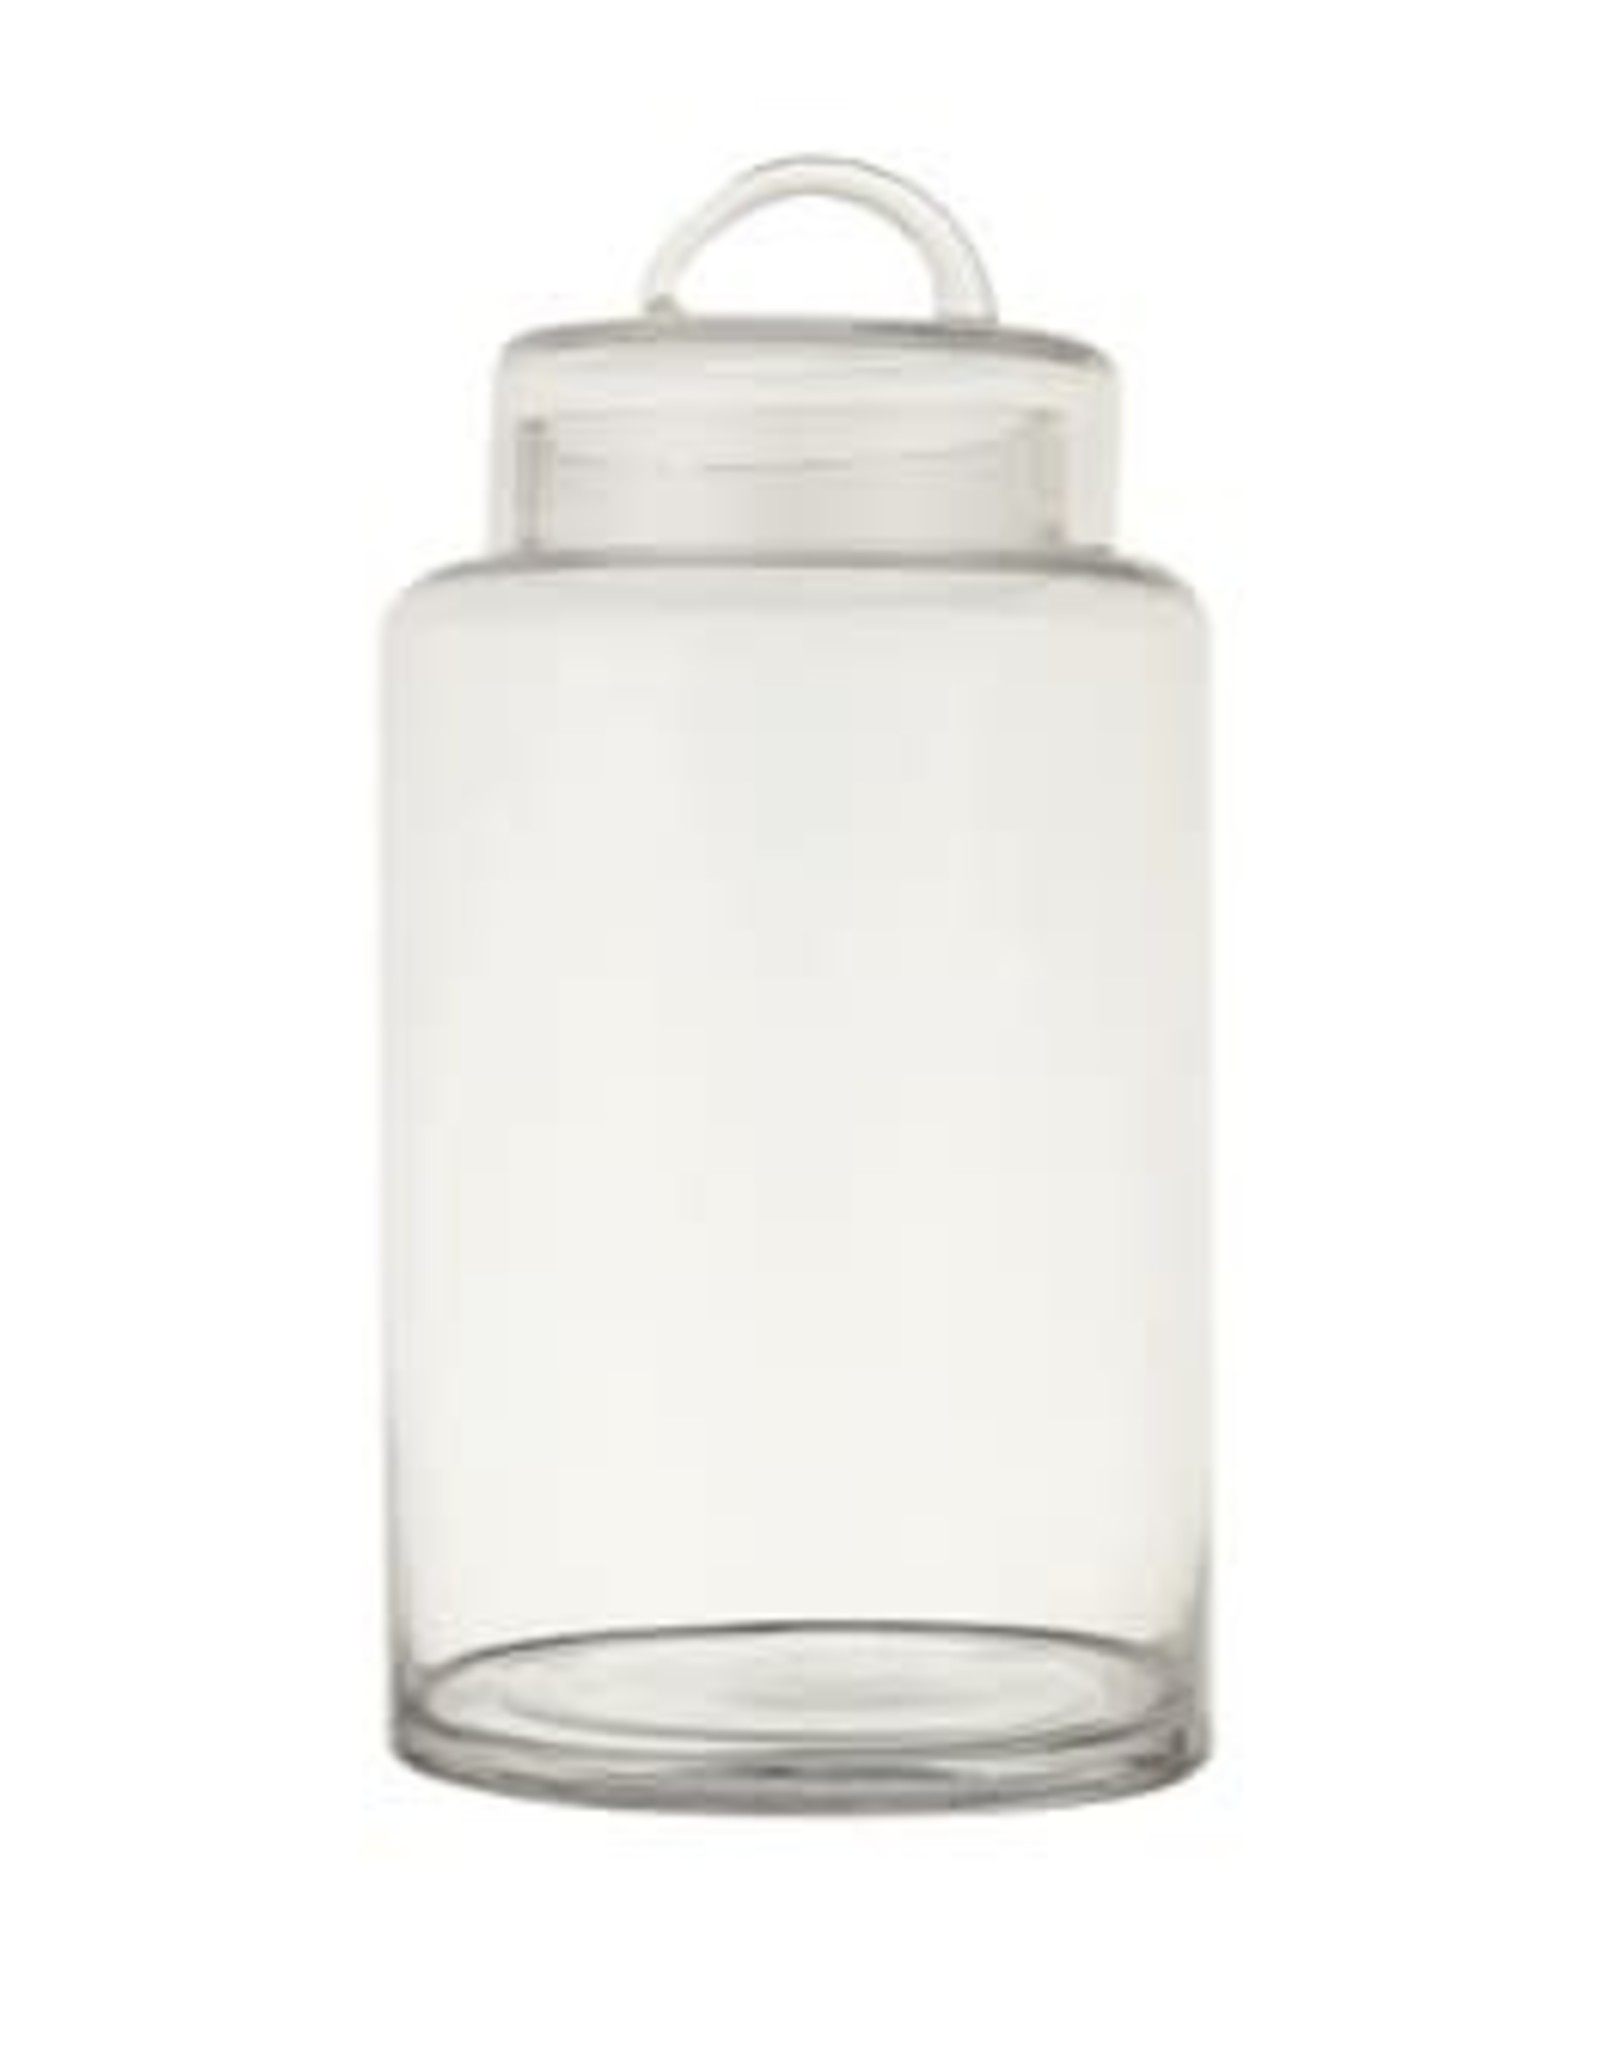 Website Glass Container with Lid